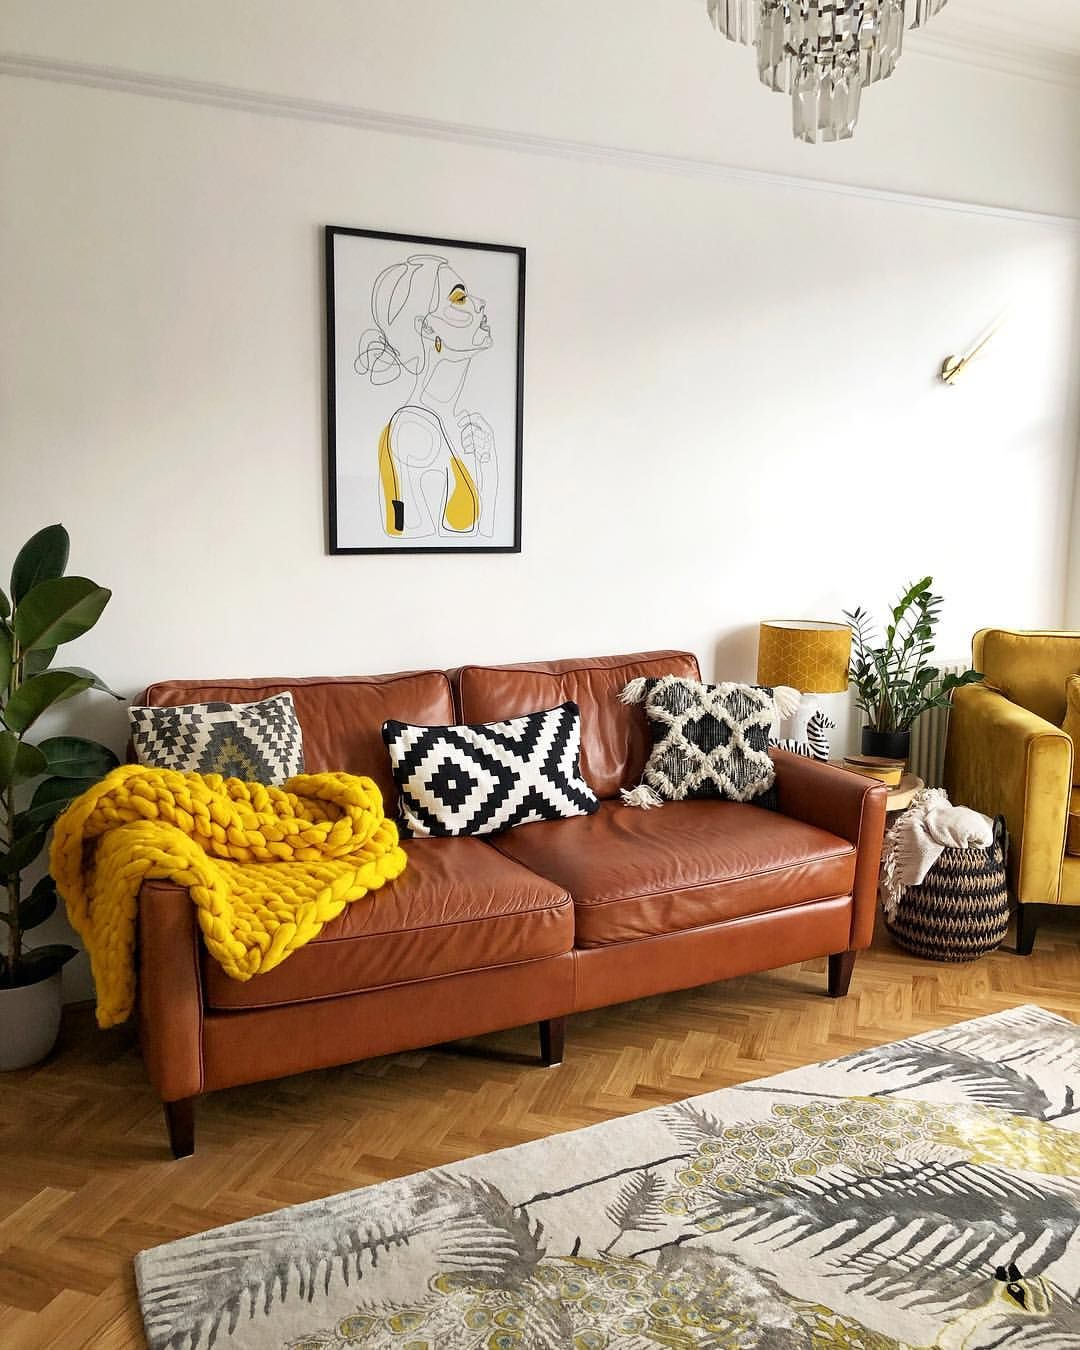 Living Room With Mid Century Style Tan Sofa Yellow Velvet Armchair And Yellow And Black Accessor Tan Sofa Living Room Leather Sofa Living Room Tan Living Room